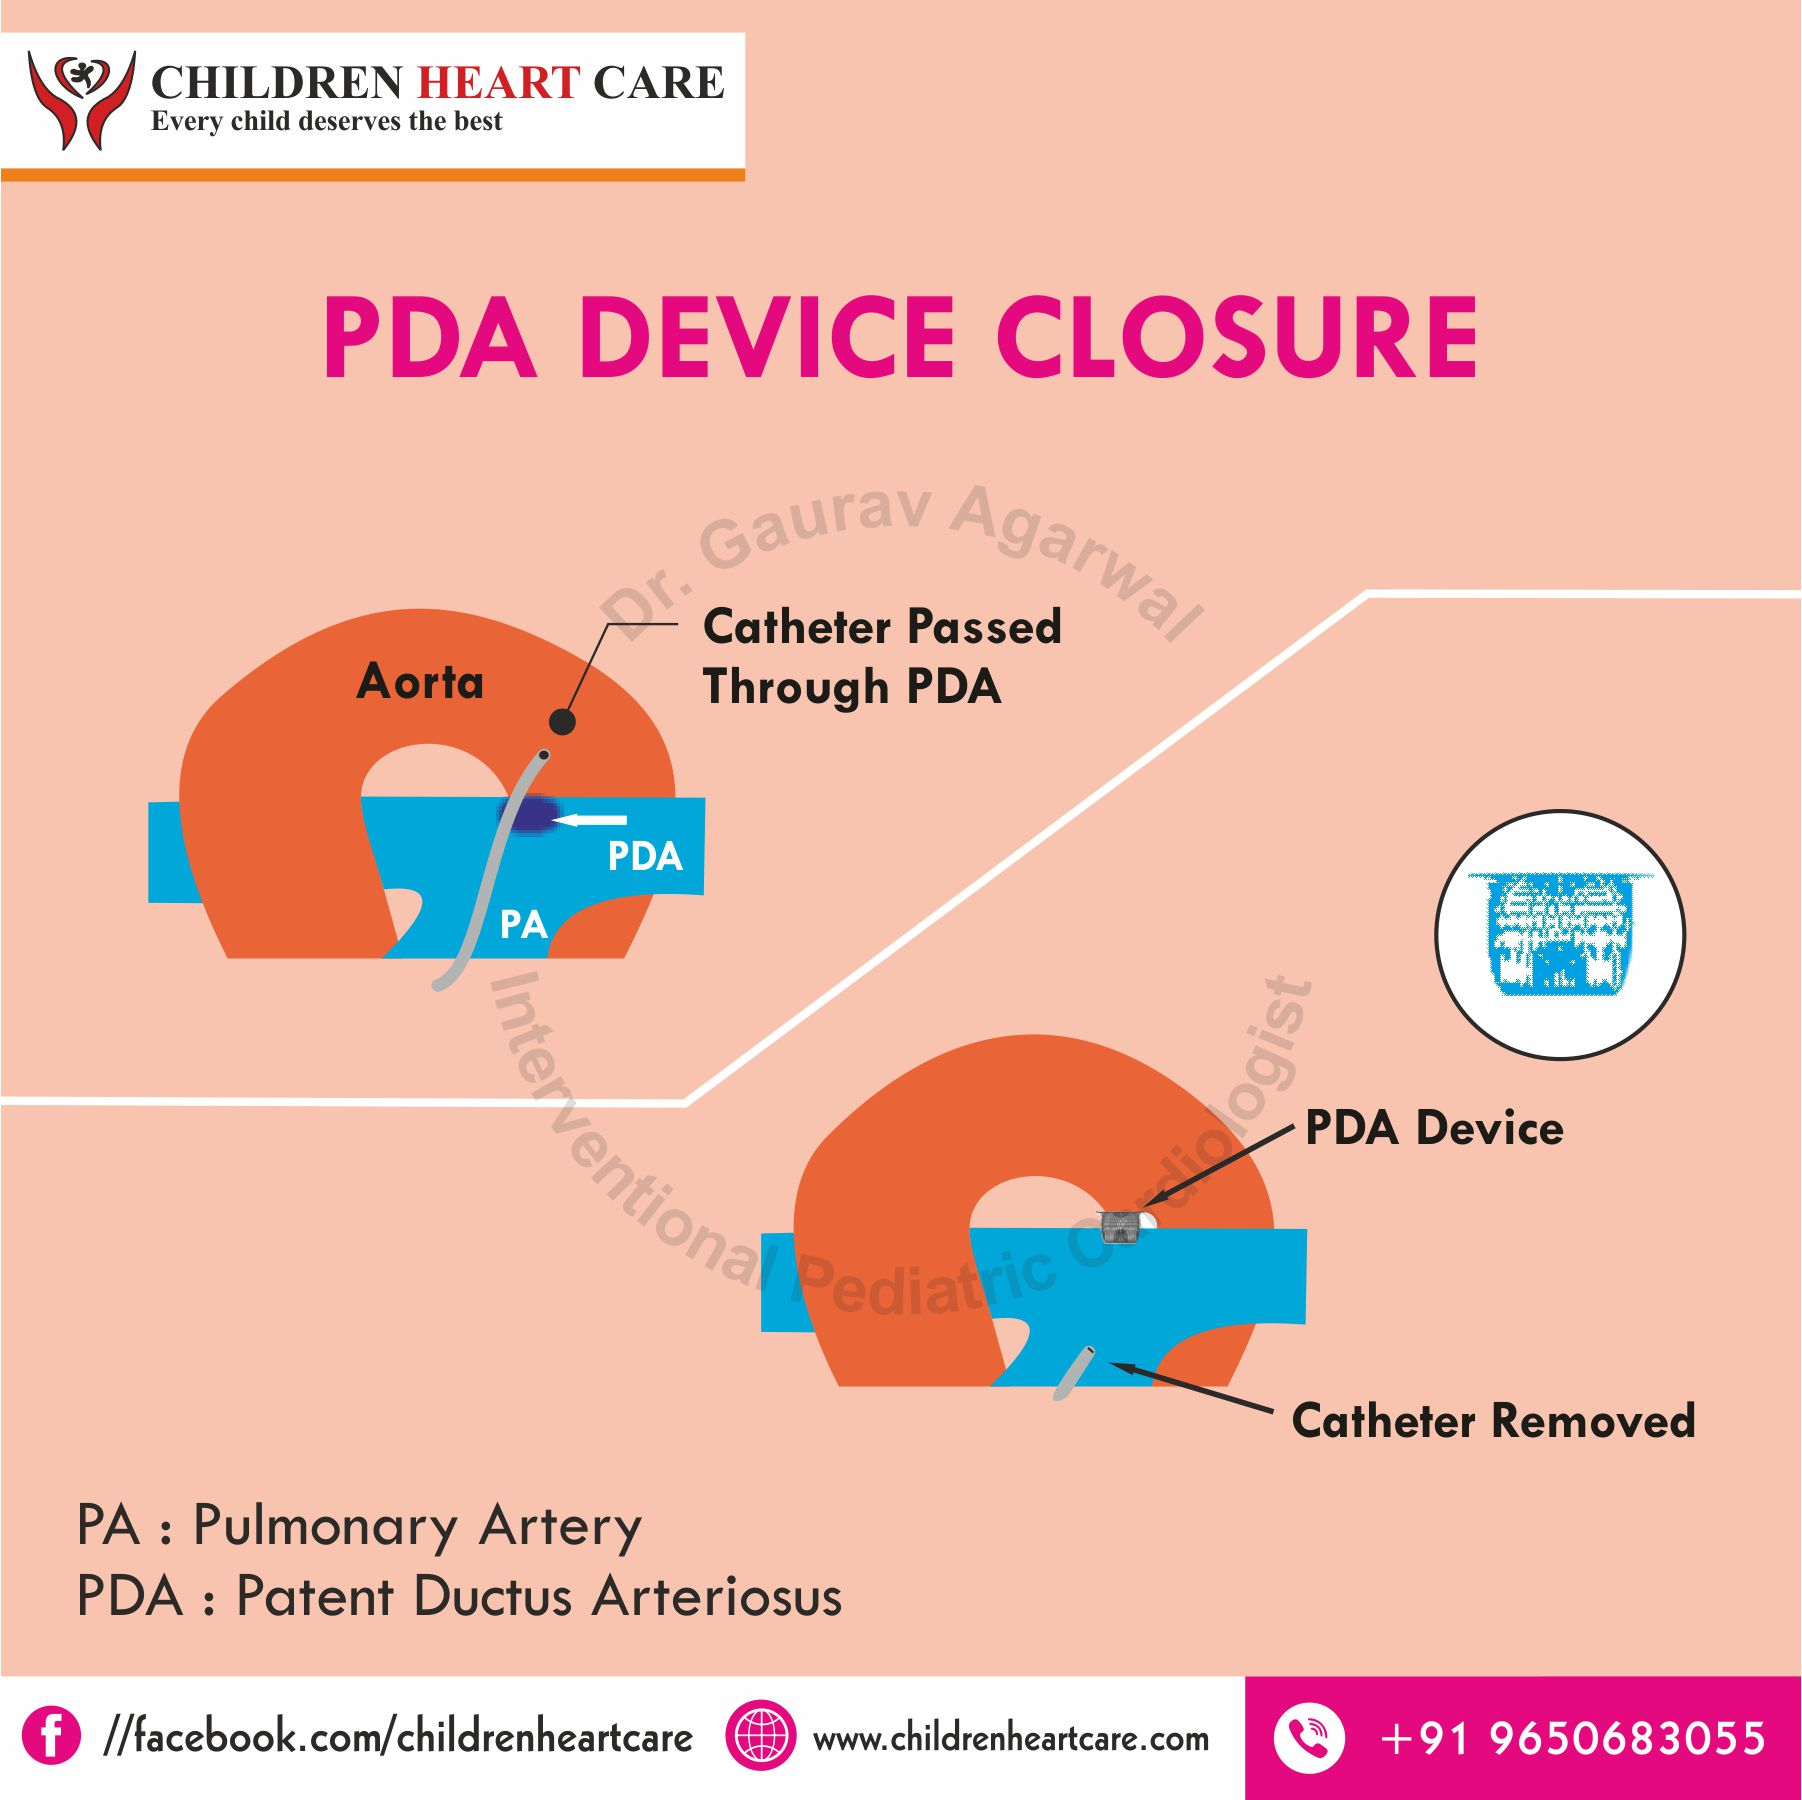 PDA DEVICE CLOSURE